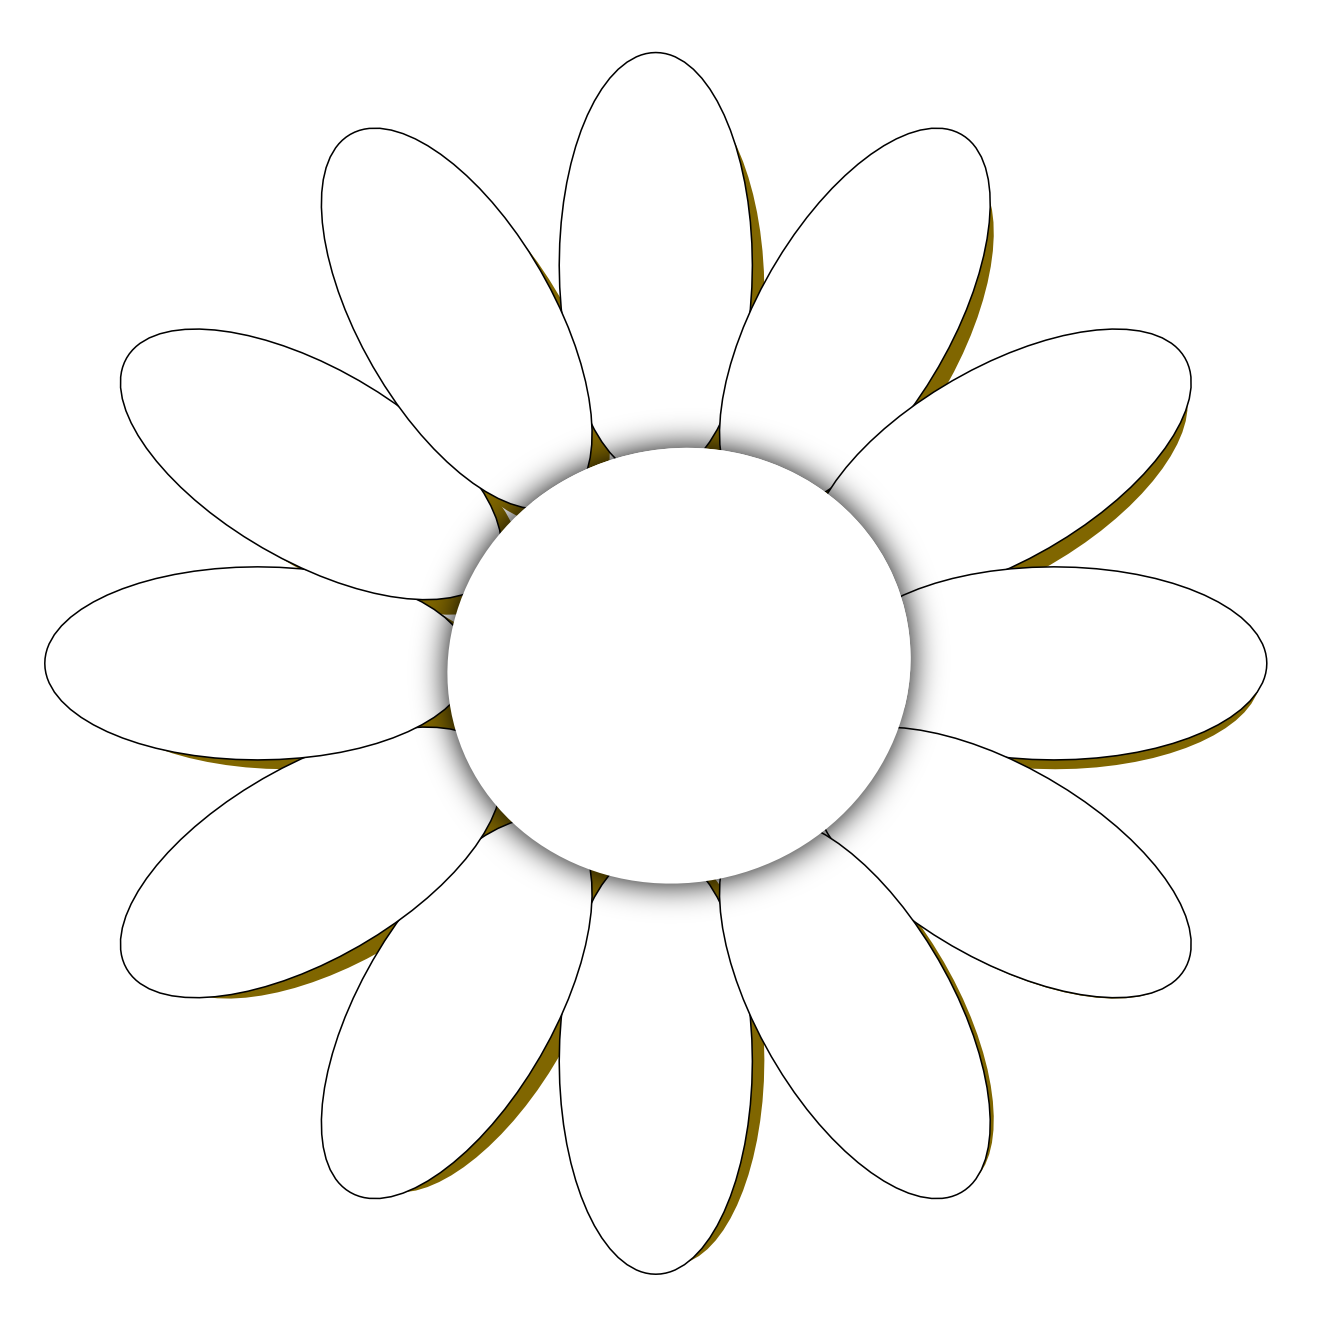 Line art drawings of. Outline clipart daisy